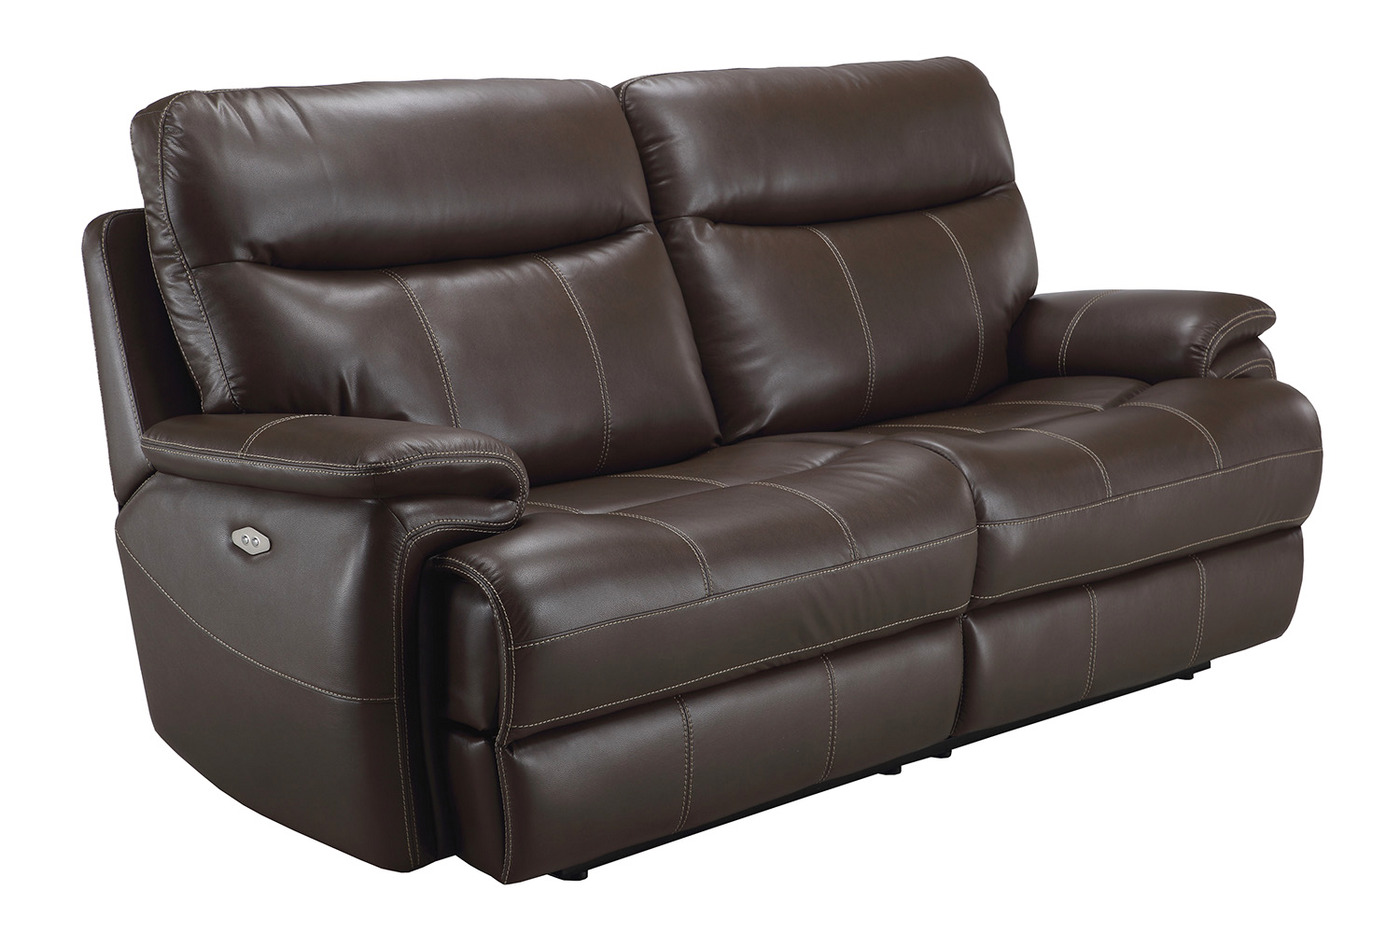 Dylan Mahogany Transitional Power Reclining Sofa With Pillow Top  ~ Leather Sofa Pillow Top Arms